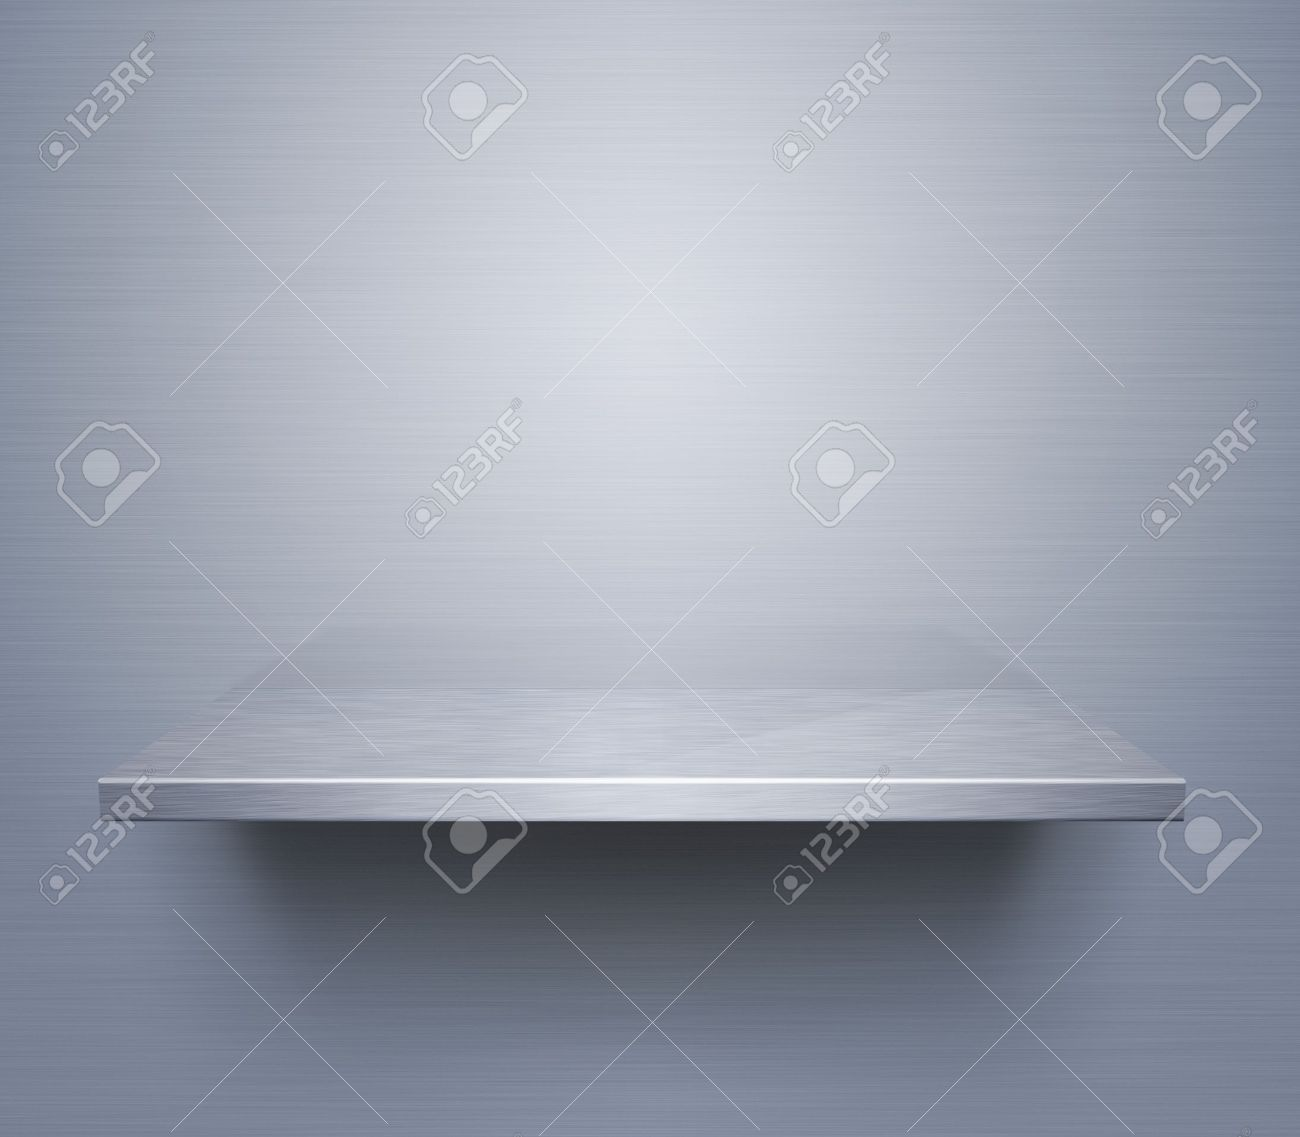 Empty brushed metal shelf at the wall Stock Photo - 12538337